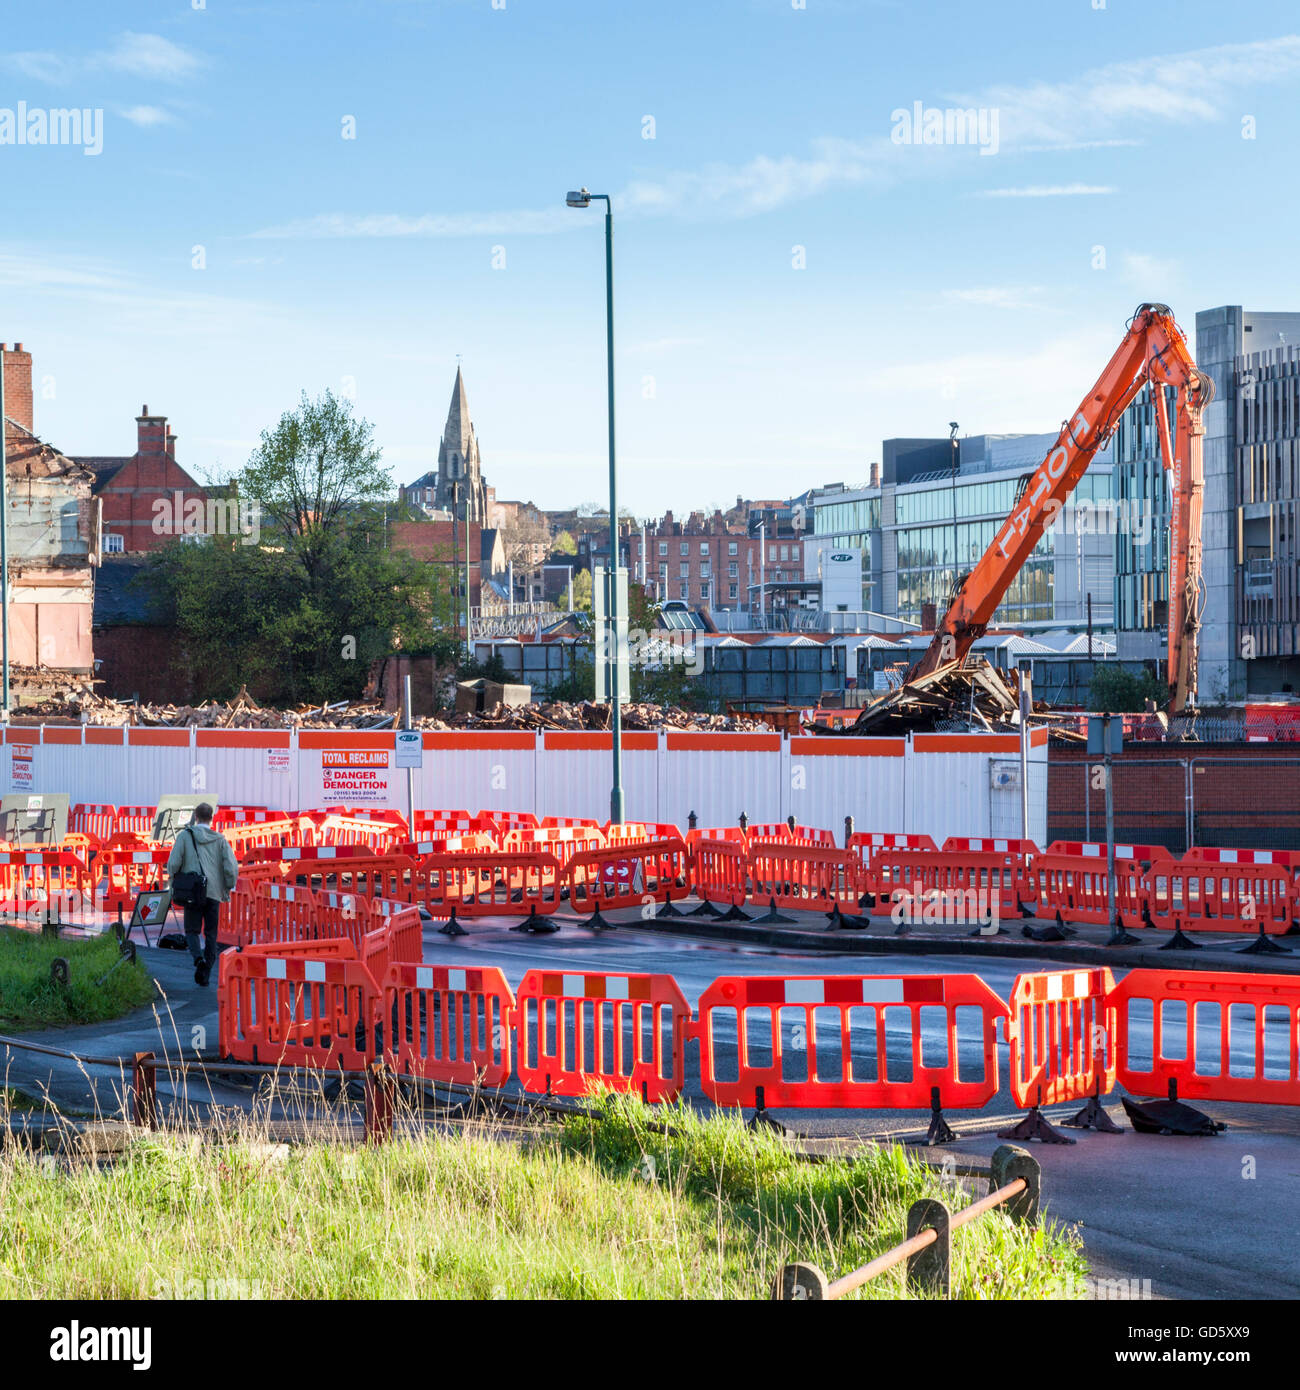 Safety barriers near buildings being demolished, Nottingham, England, UK - Stock Image